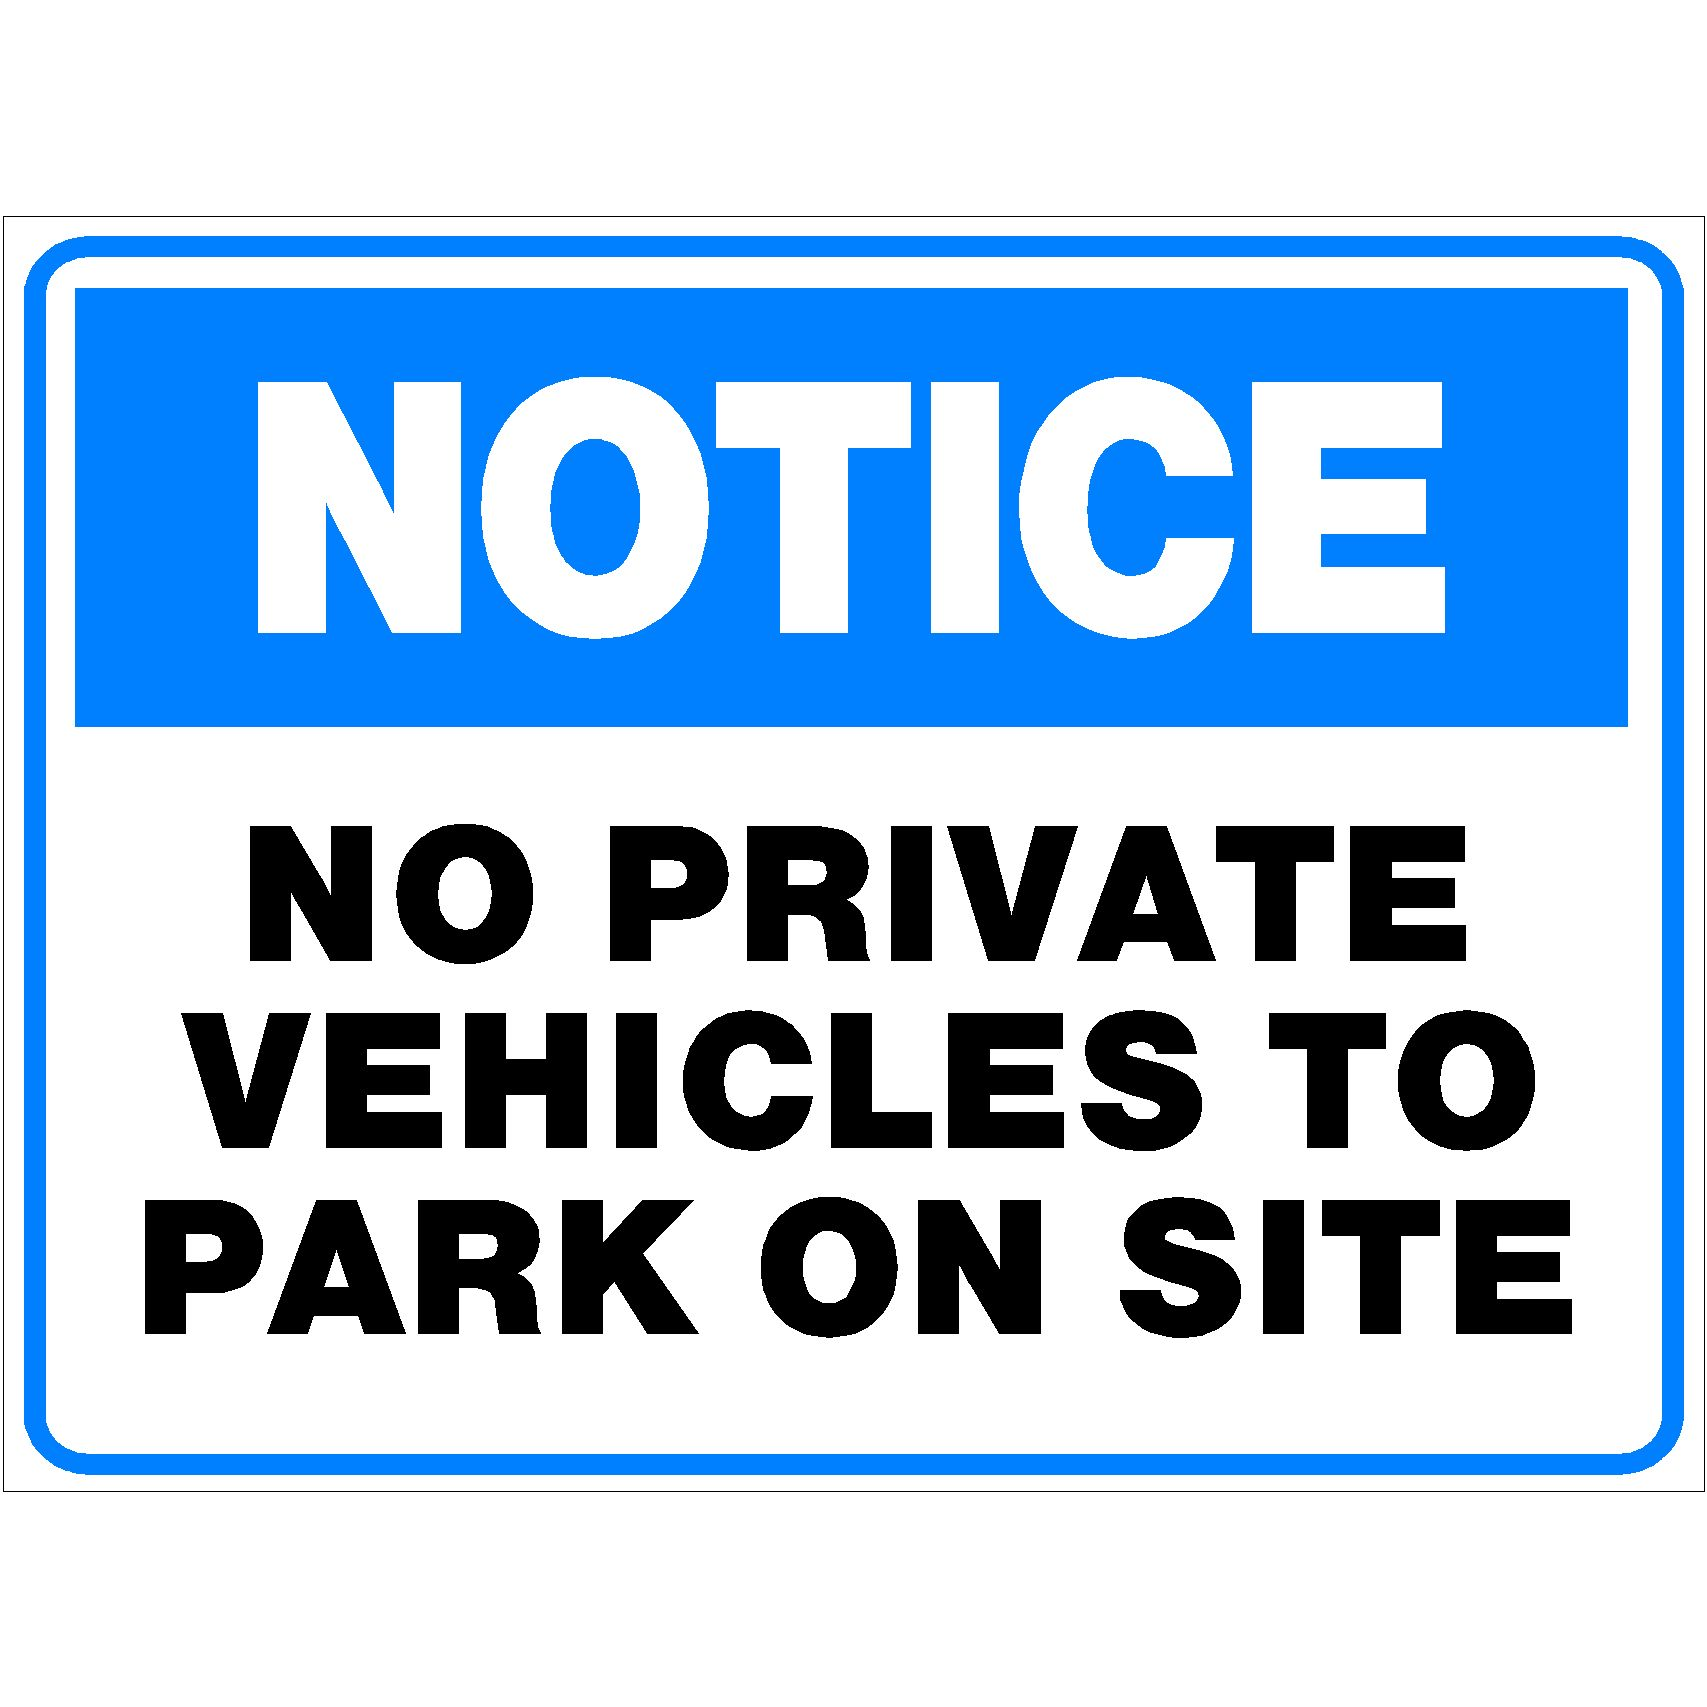 Notice No Private Vehicles To Park On Site